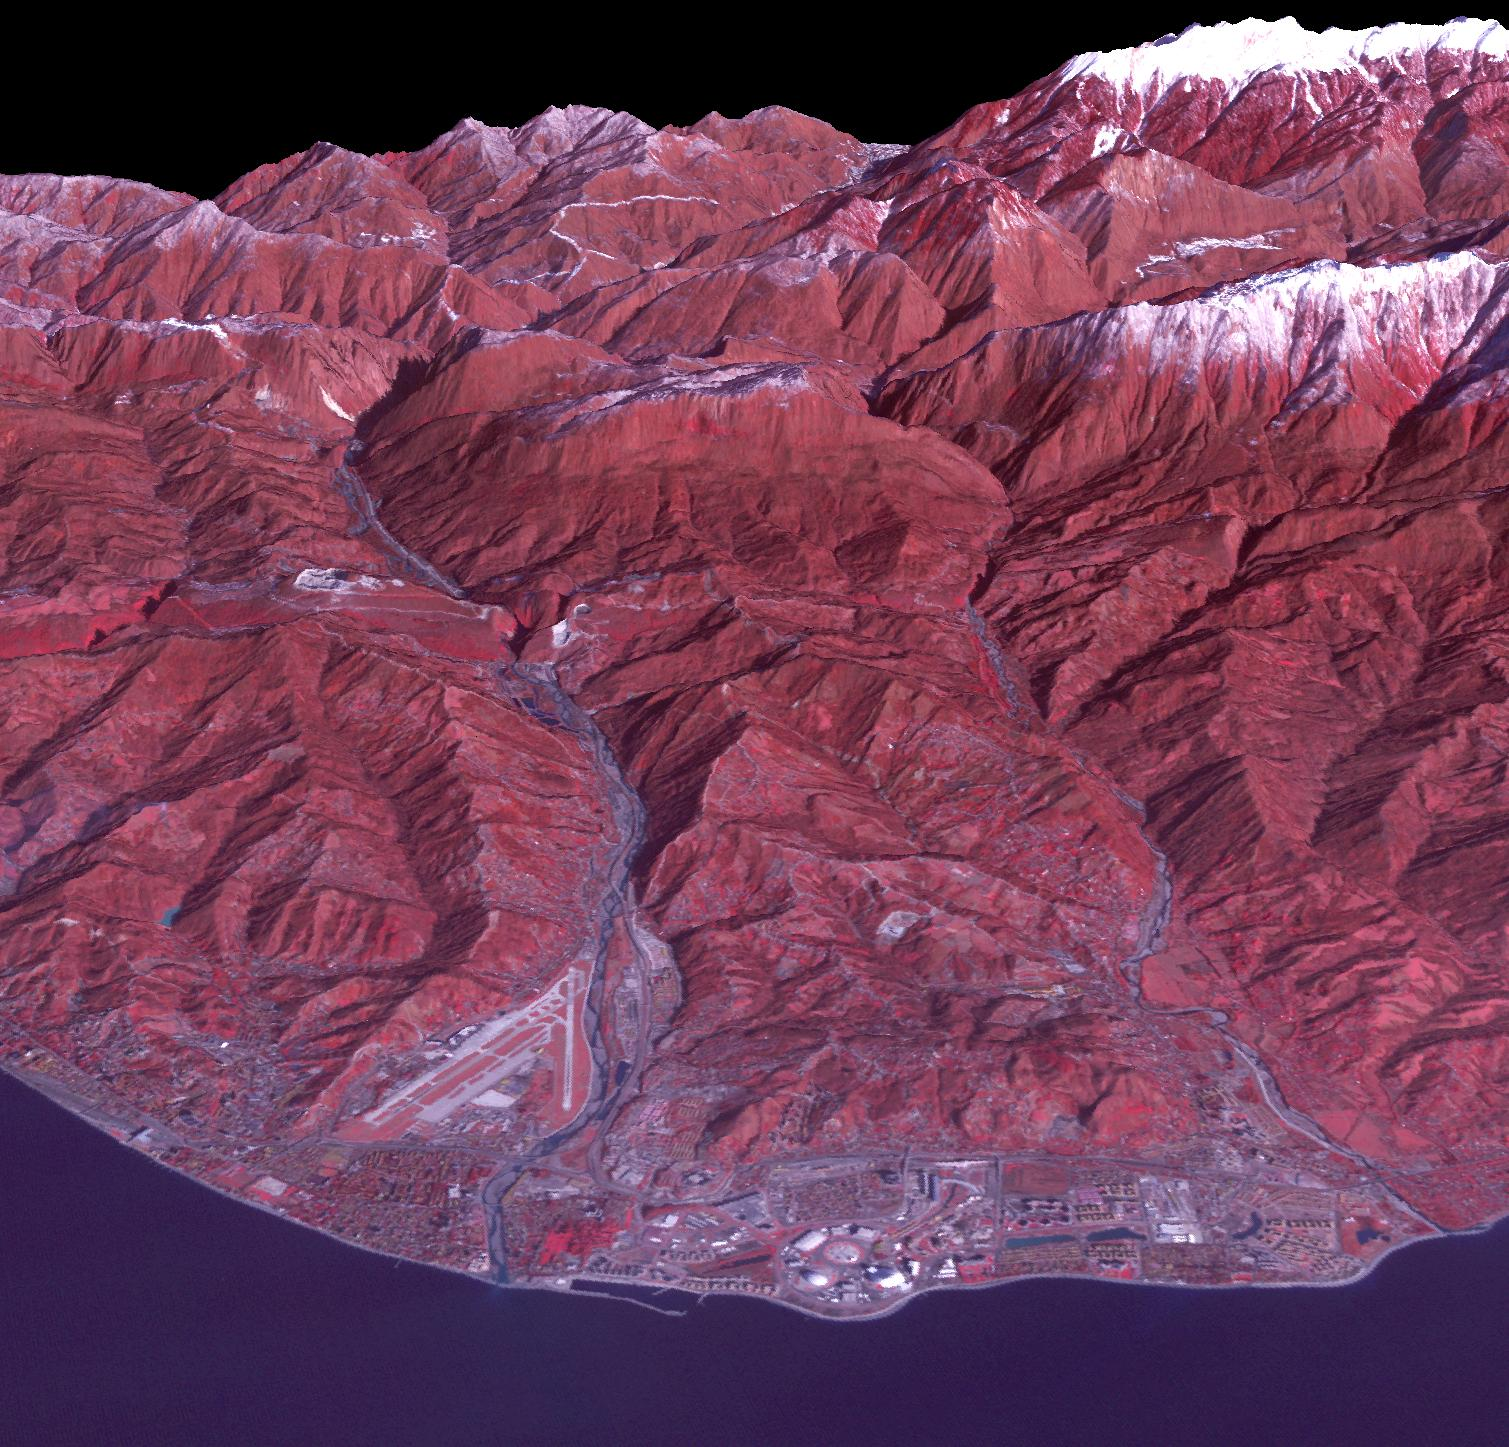 NASA Satellite Sees Sochi Winter Olympics Venues from Space (Photos)